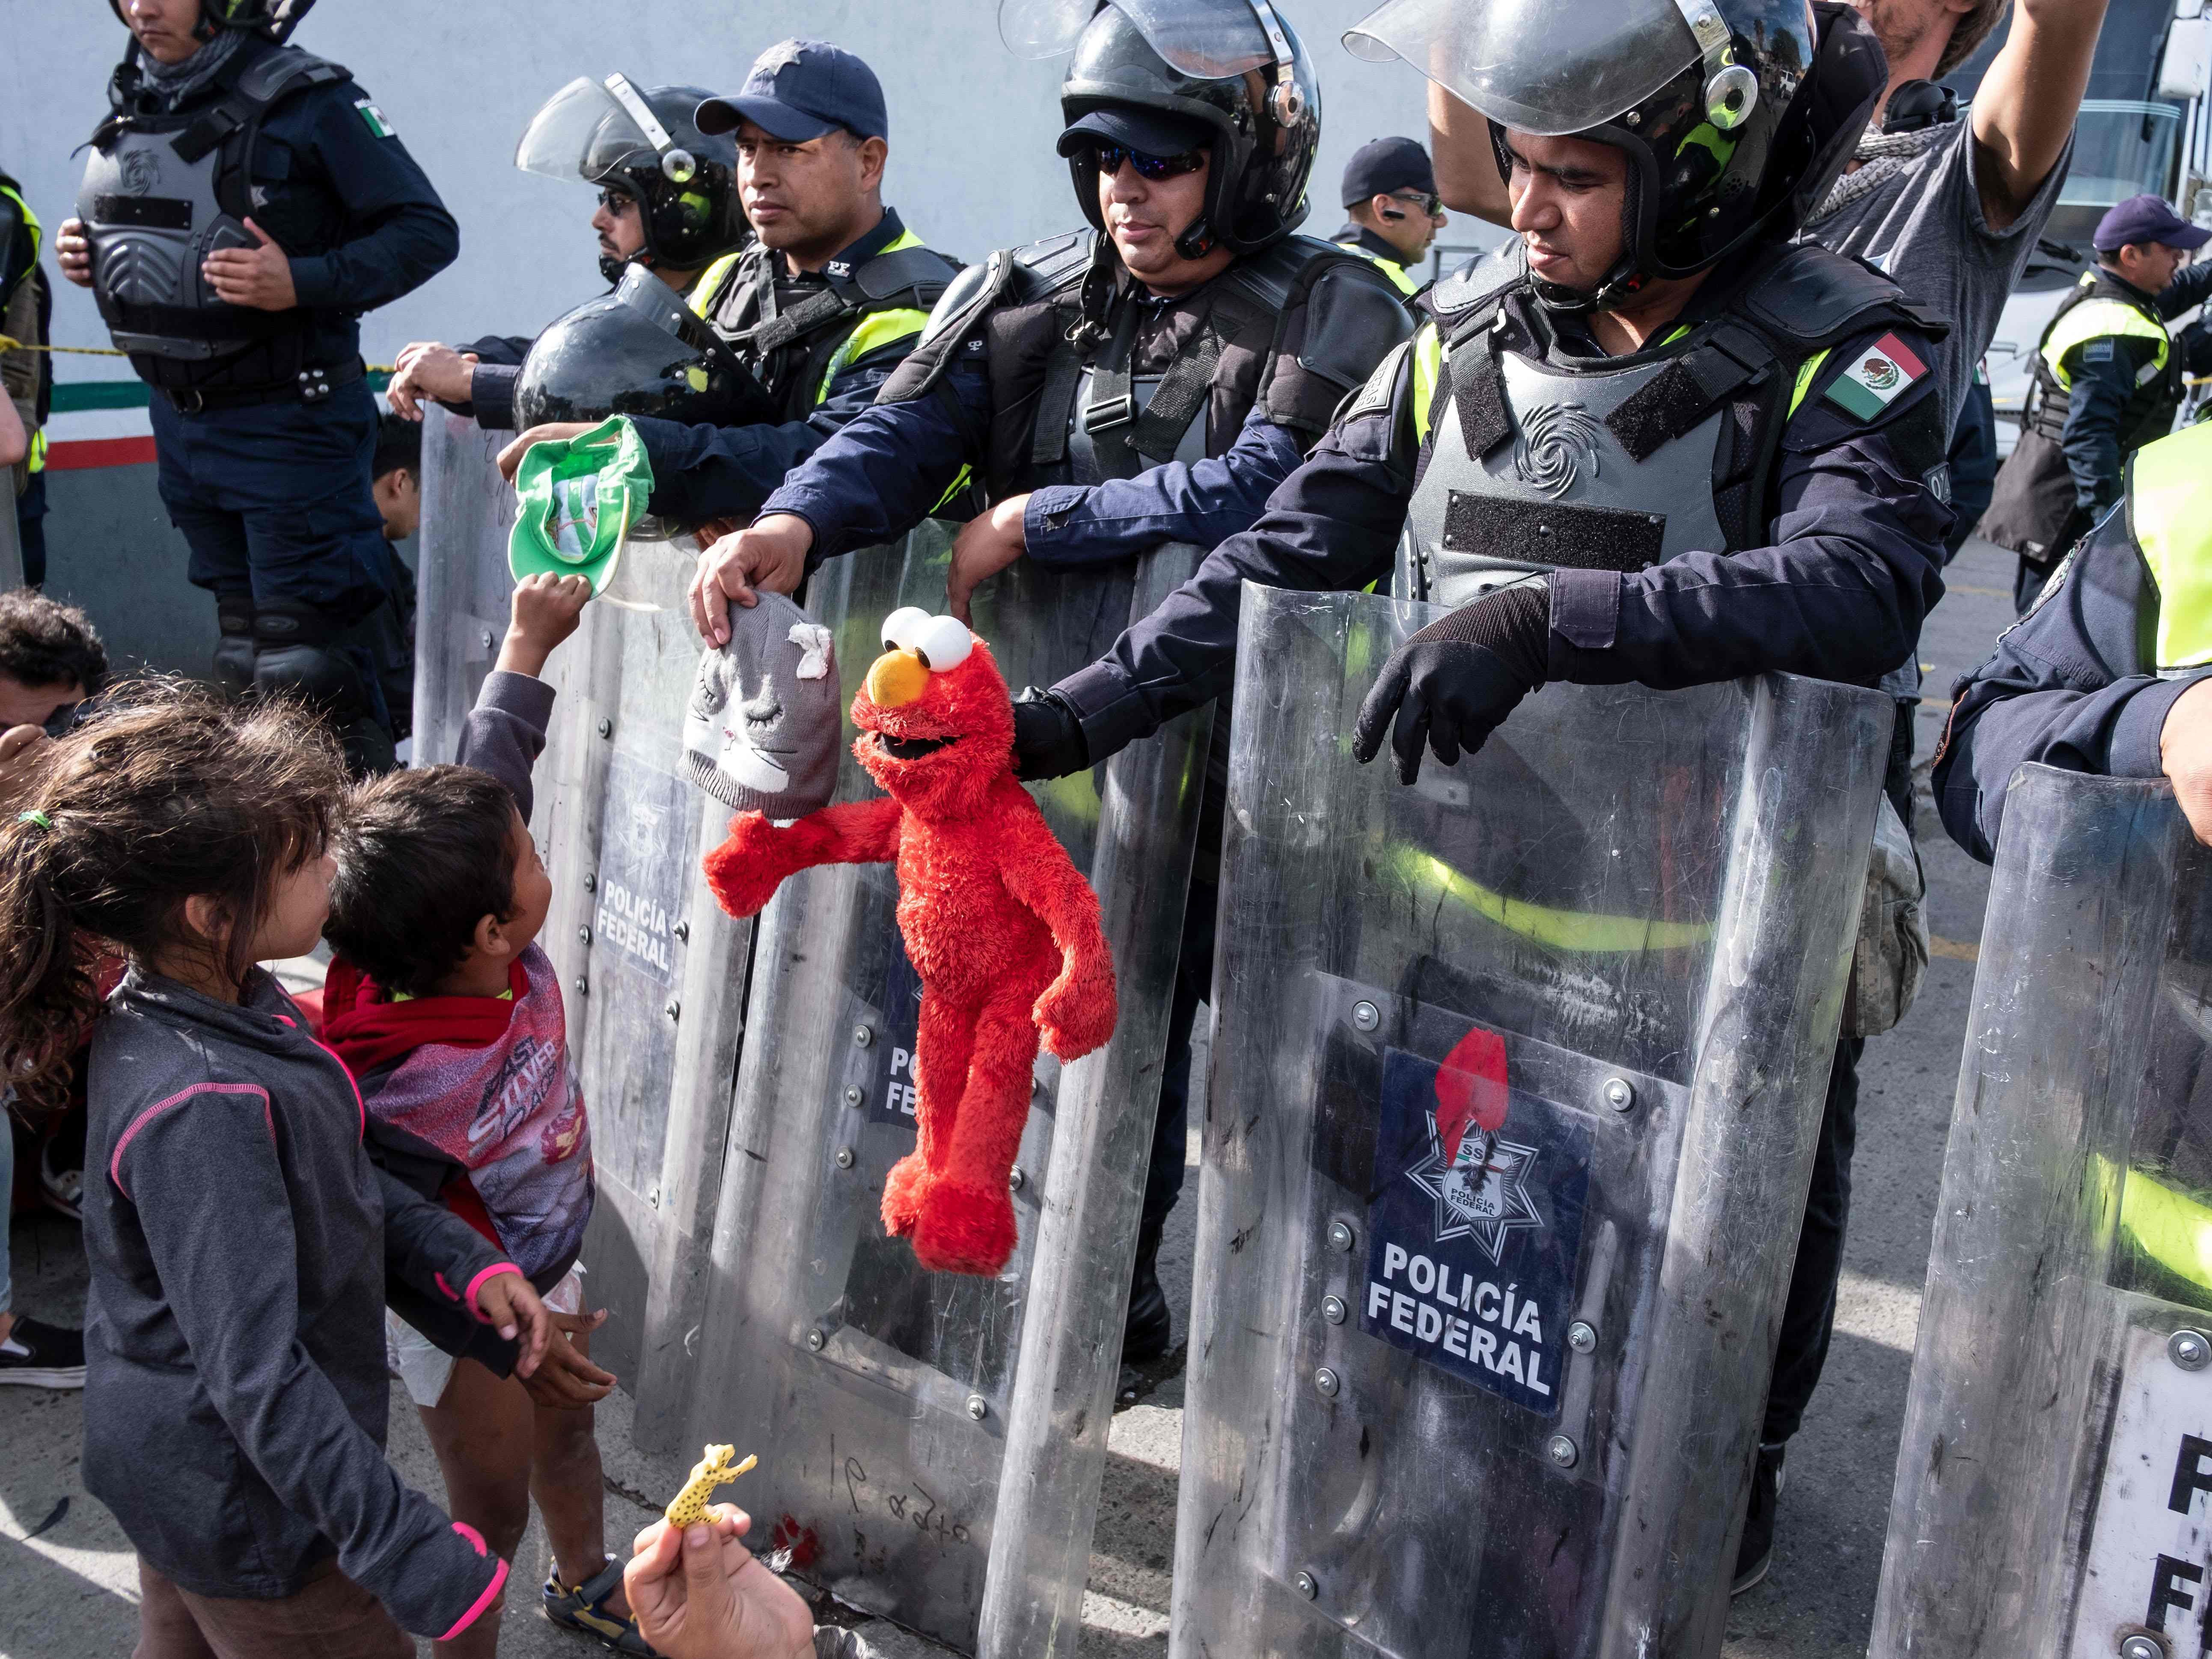 Migrant children, part of the Central American migrants, play with Mexico's Federal police at El Chaparral port of entry on the U.S.-Mexico border in Tijuana, Baja California state, Mexico on Nov. 22, 2018.